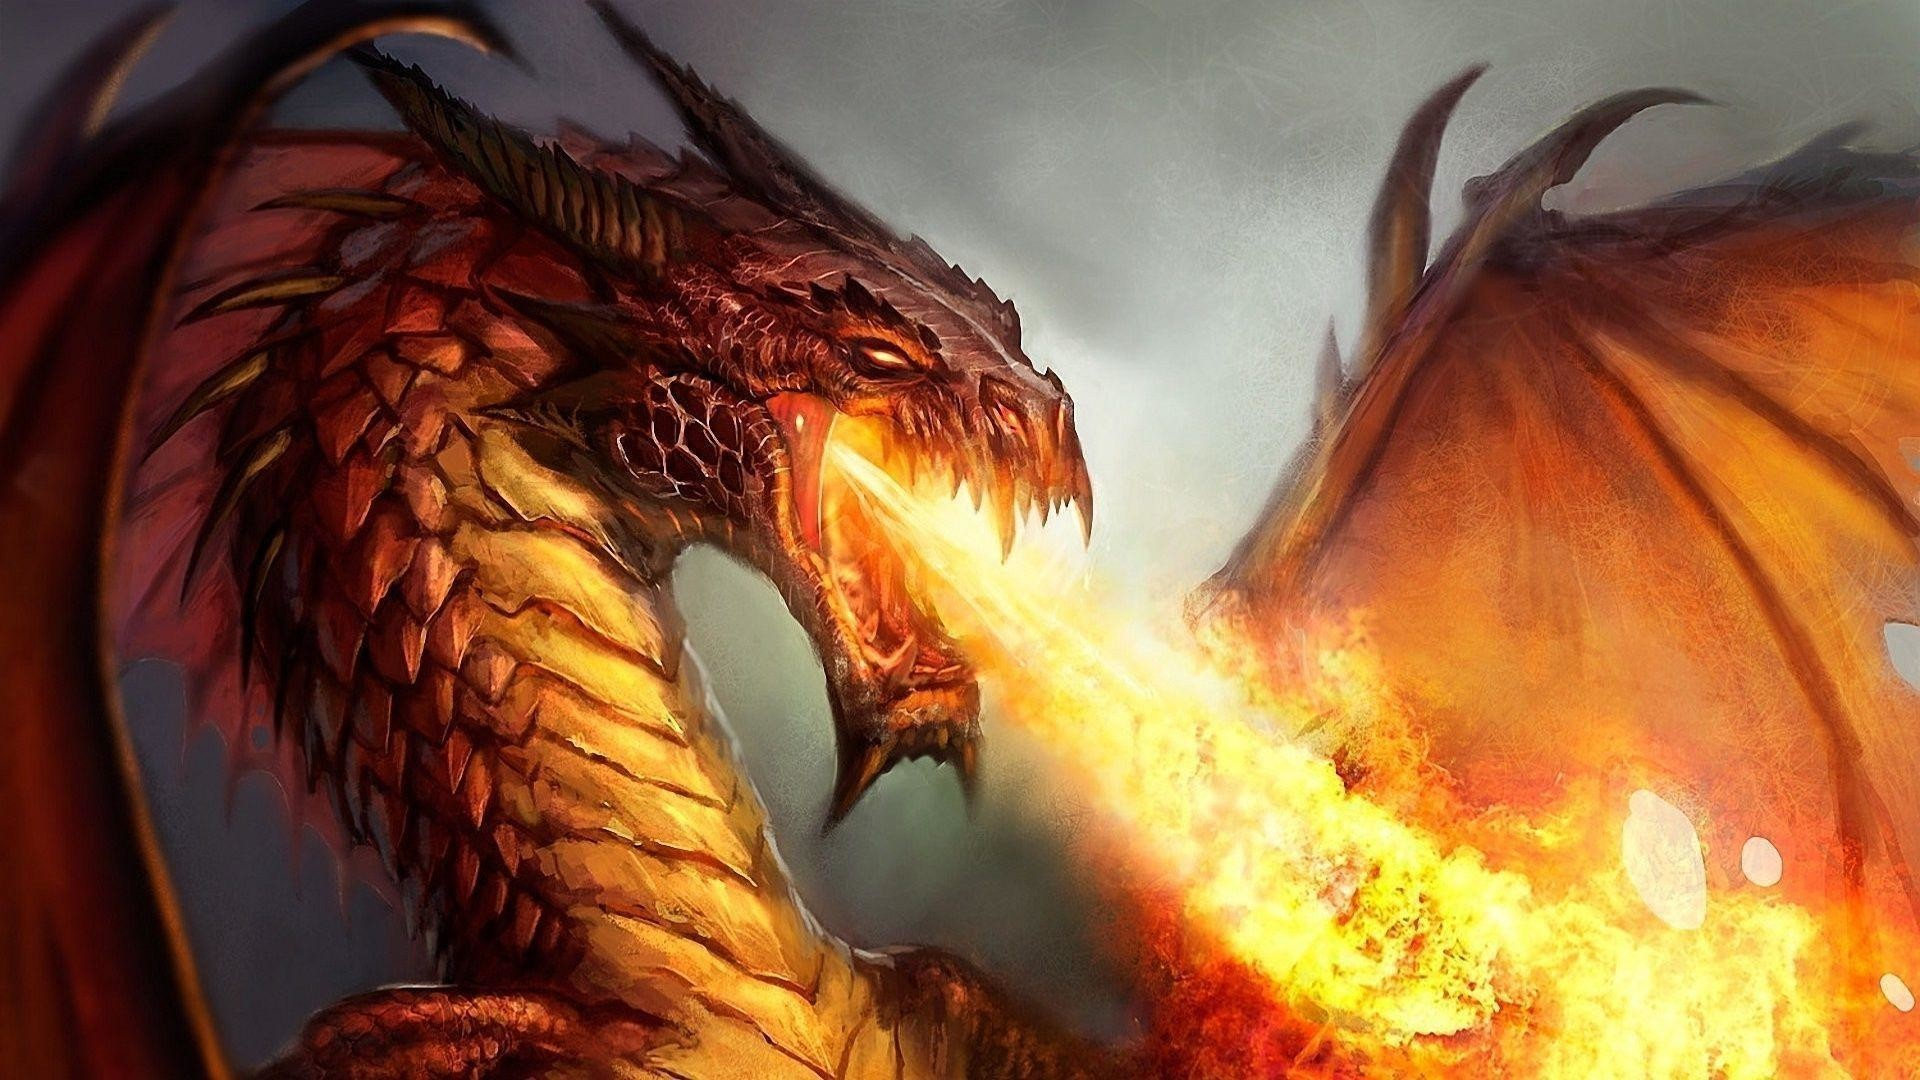 1920x1080  Wallpapers For > Fire Dragon Wallpapers 3d